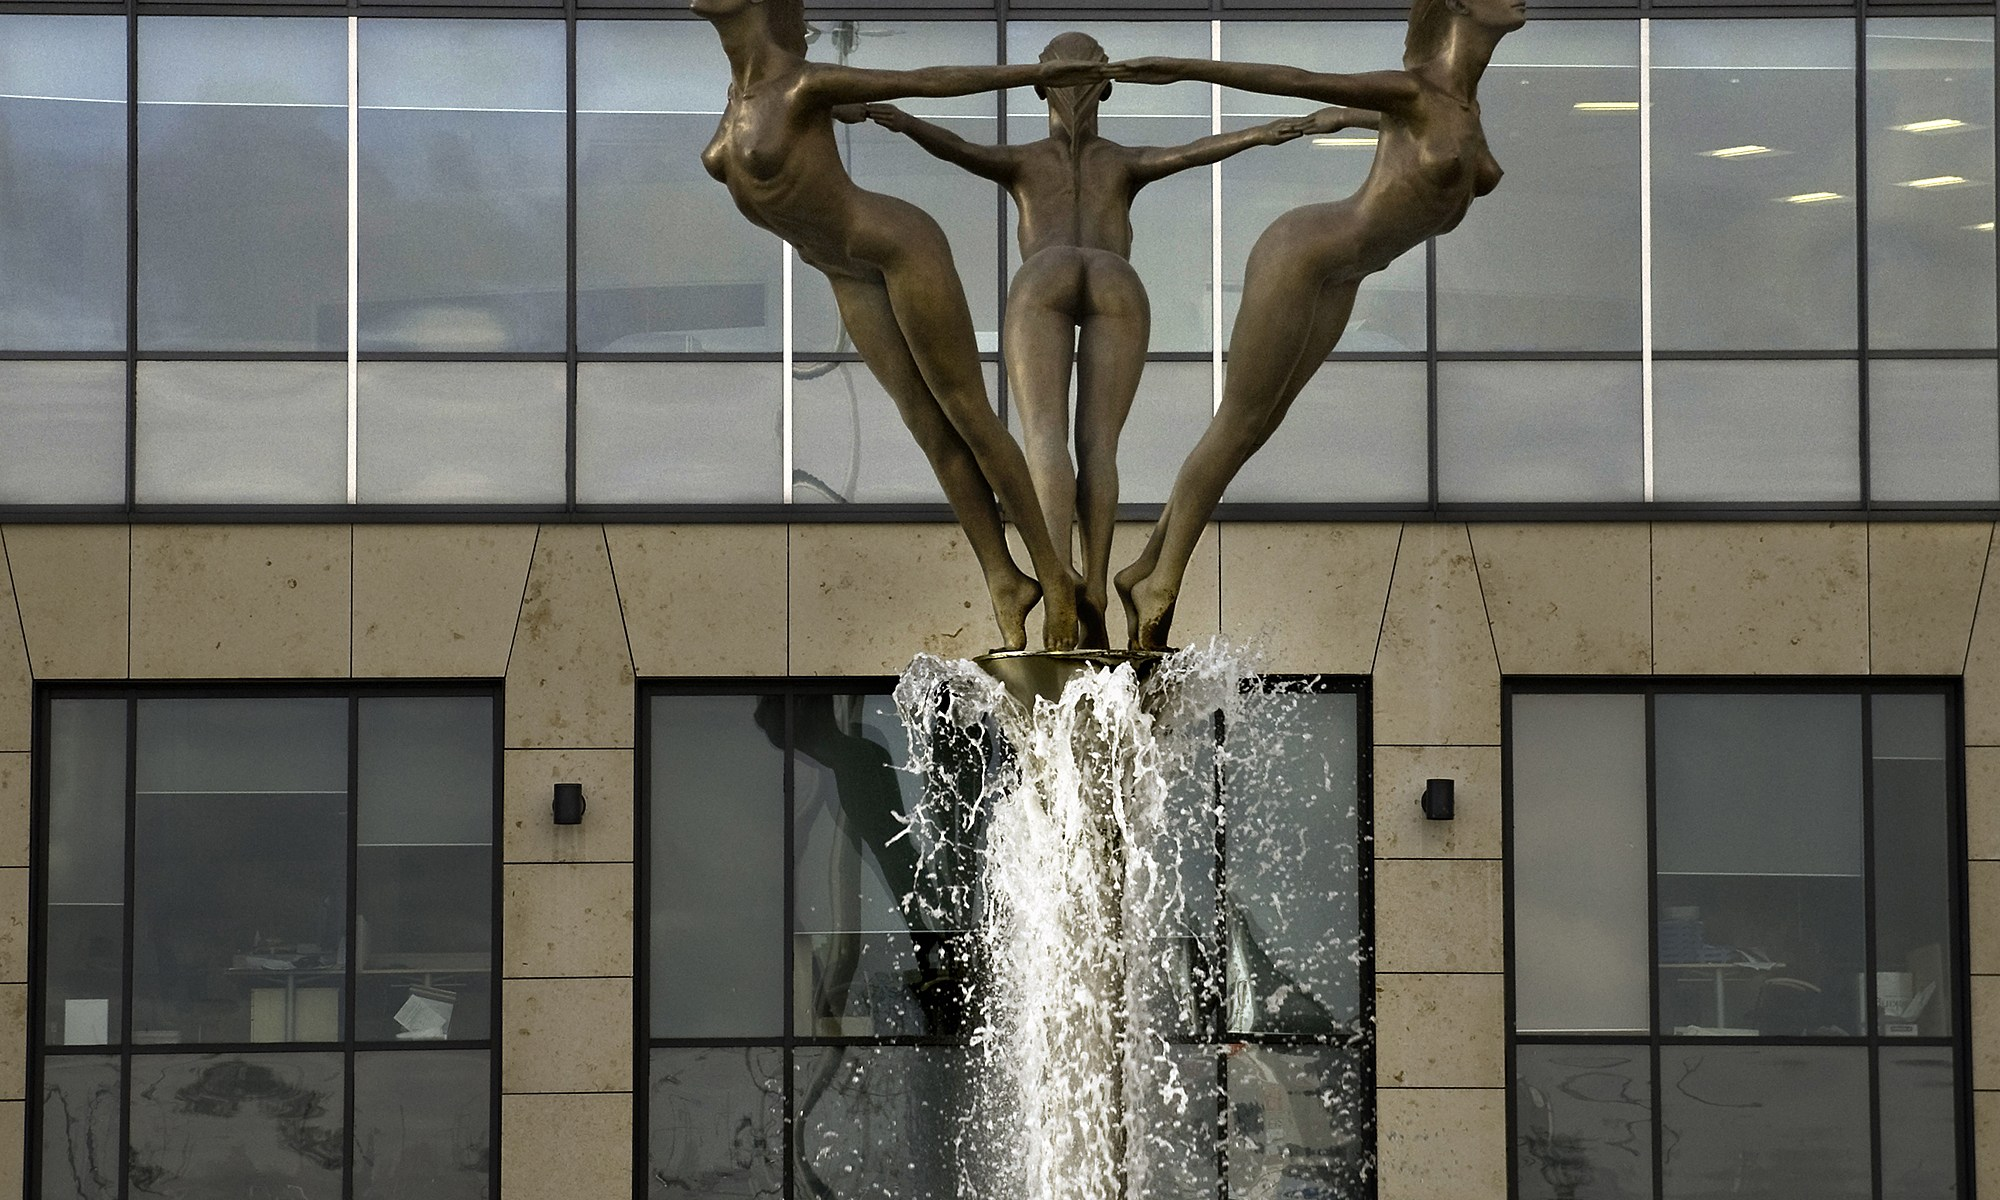 Water Statue in Trafford Park